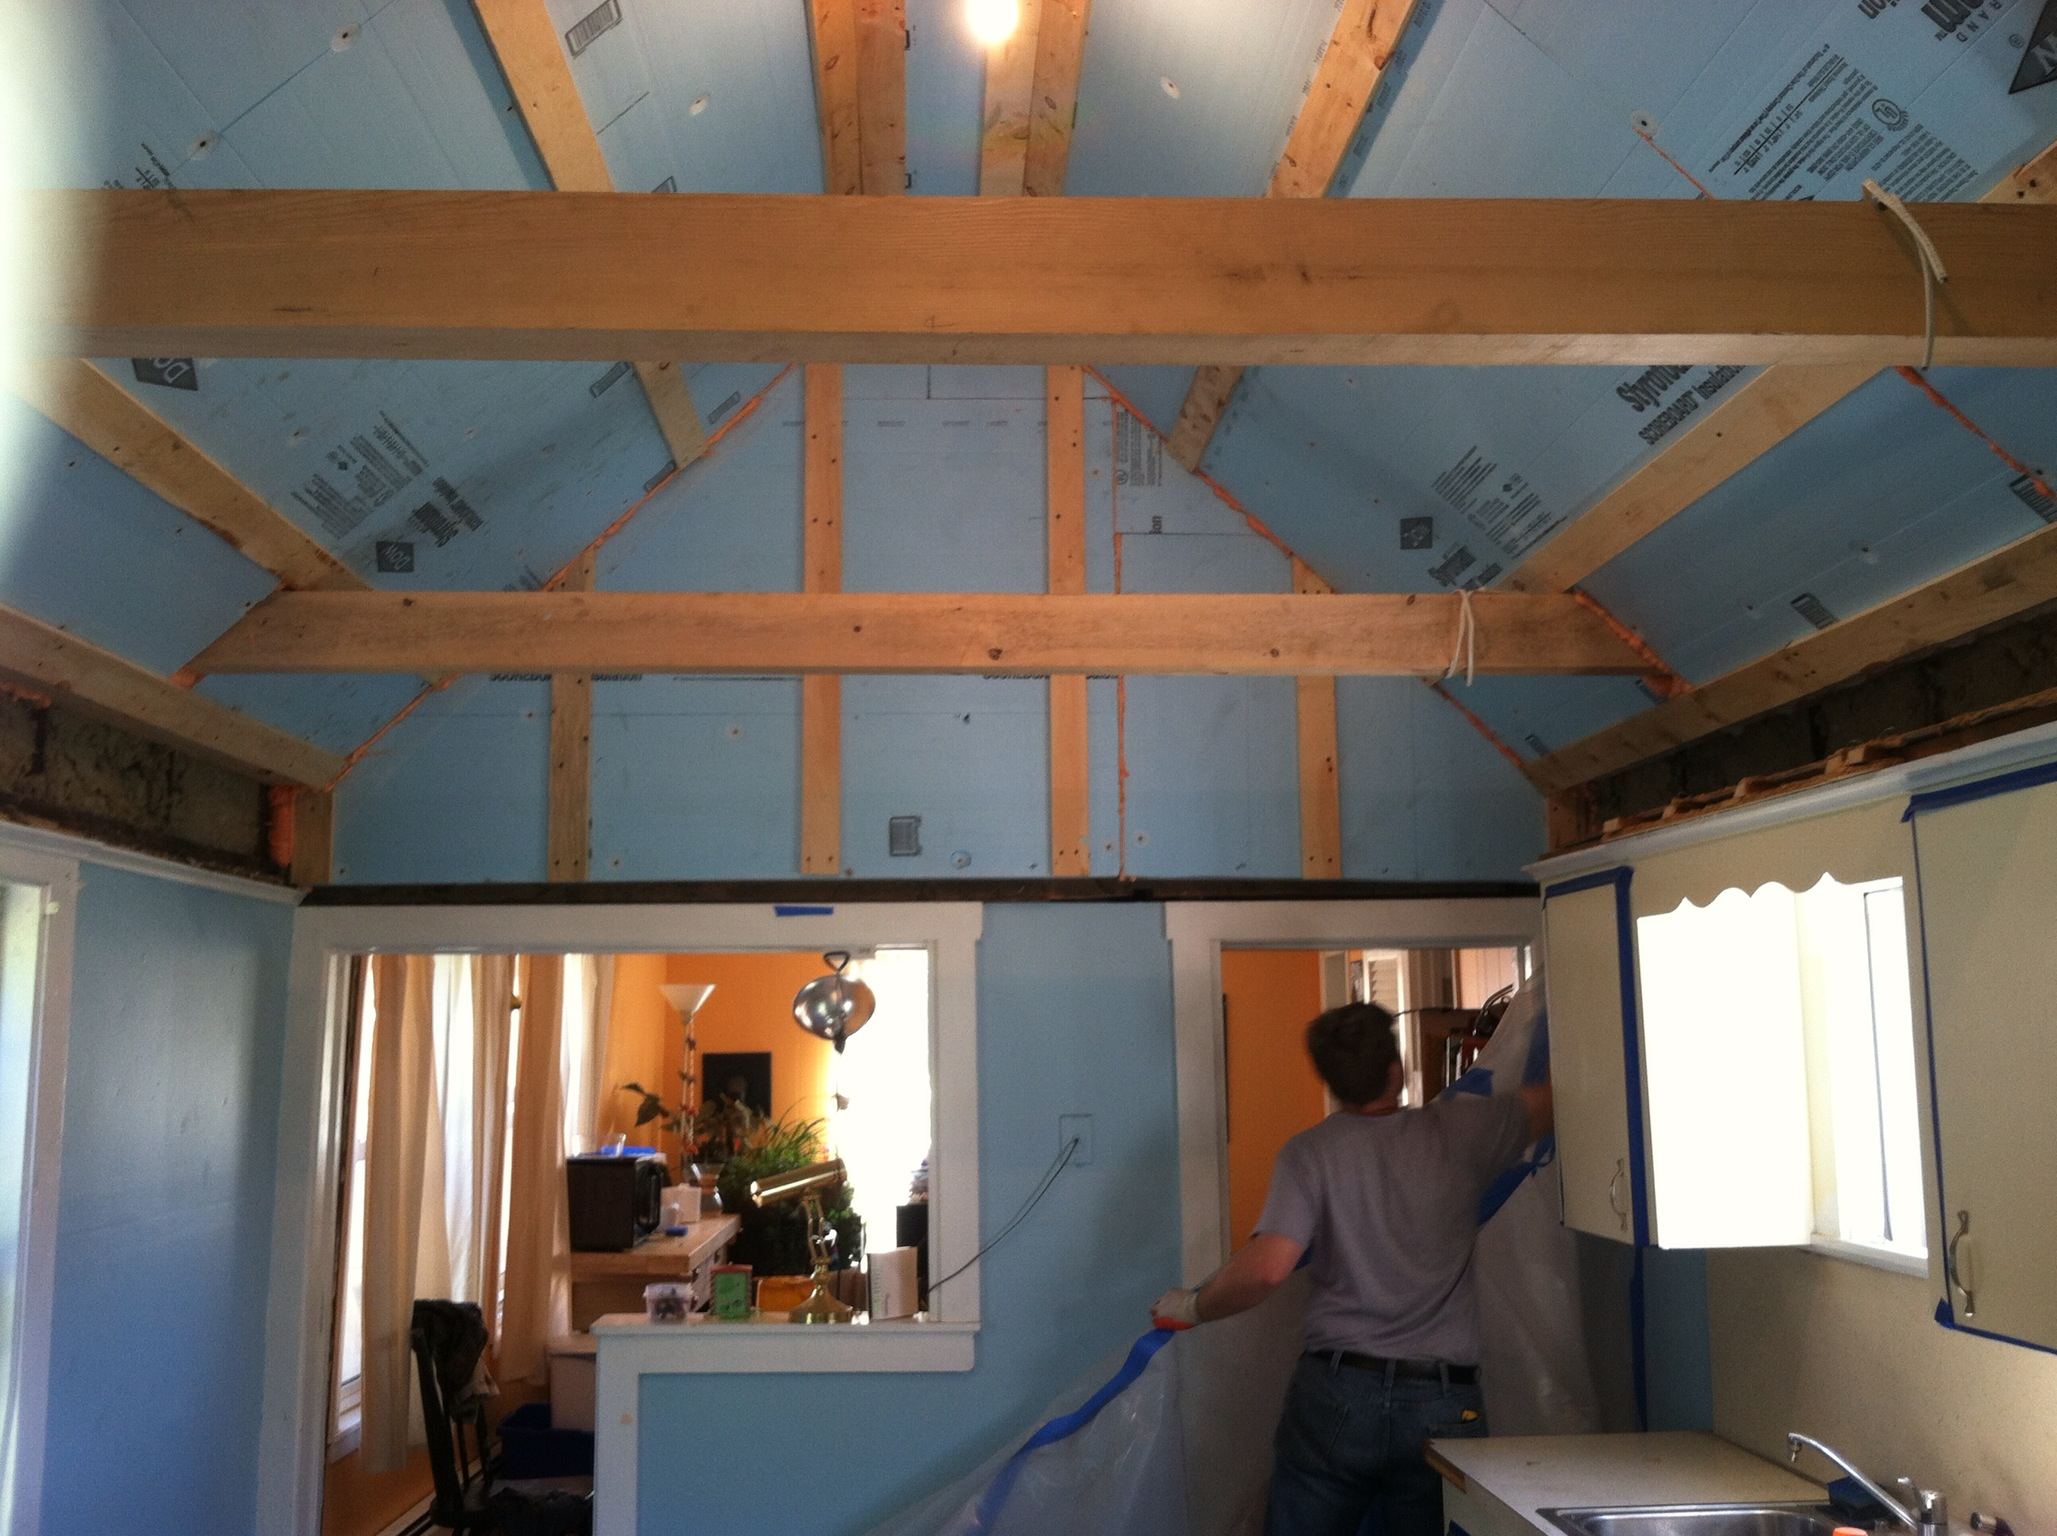 Flat Ceiling to Lofted Ceiling - Super Insulated - Pre Drywall